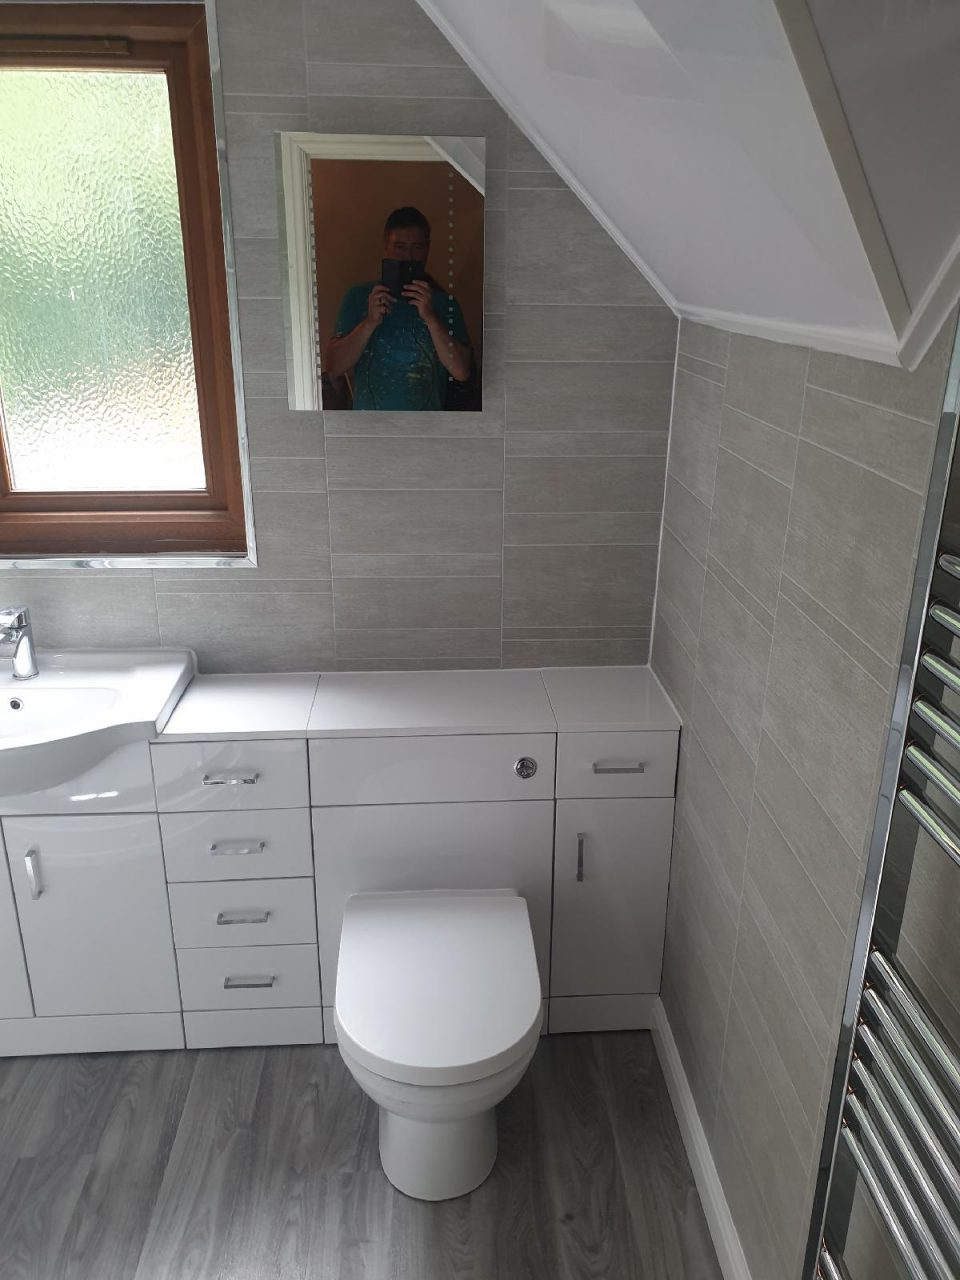 New Bathroom Mrs Wootton in Birmingham Toilet built in